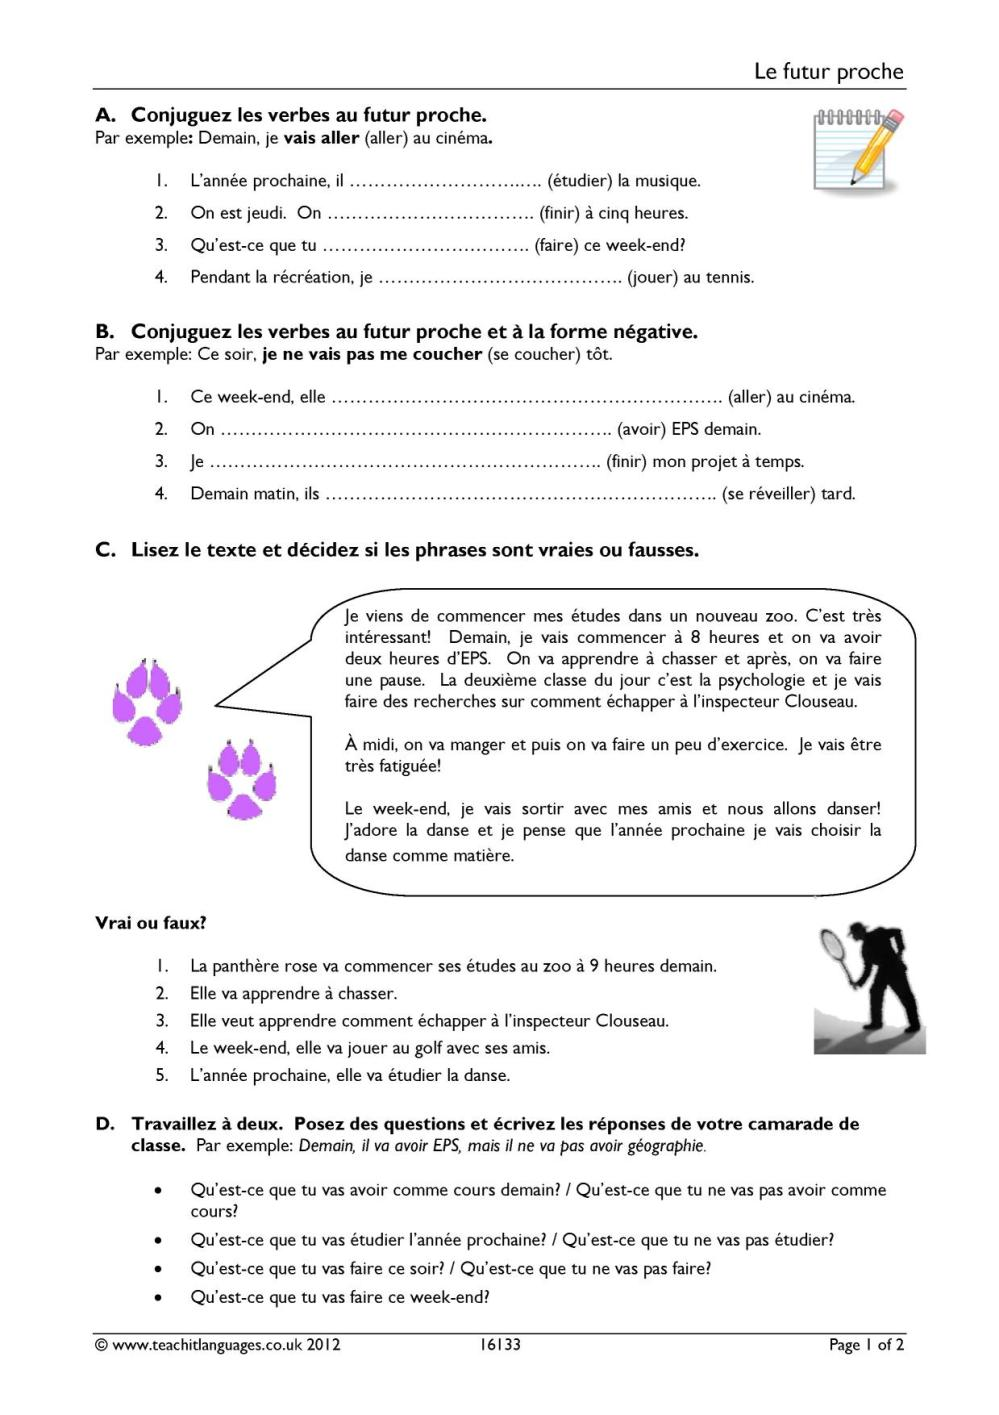 medium resolution of French Grammar Worksheet   Printable Worksheets and Activities for  Teachers